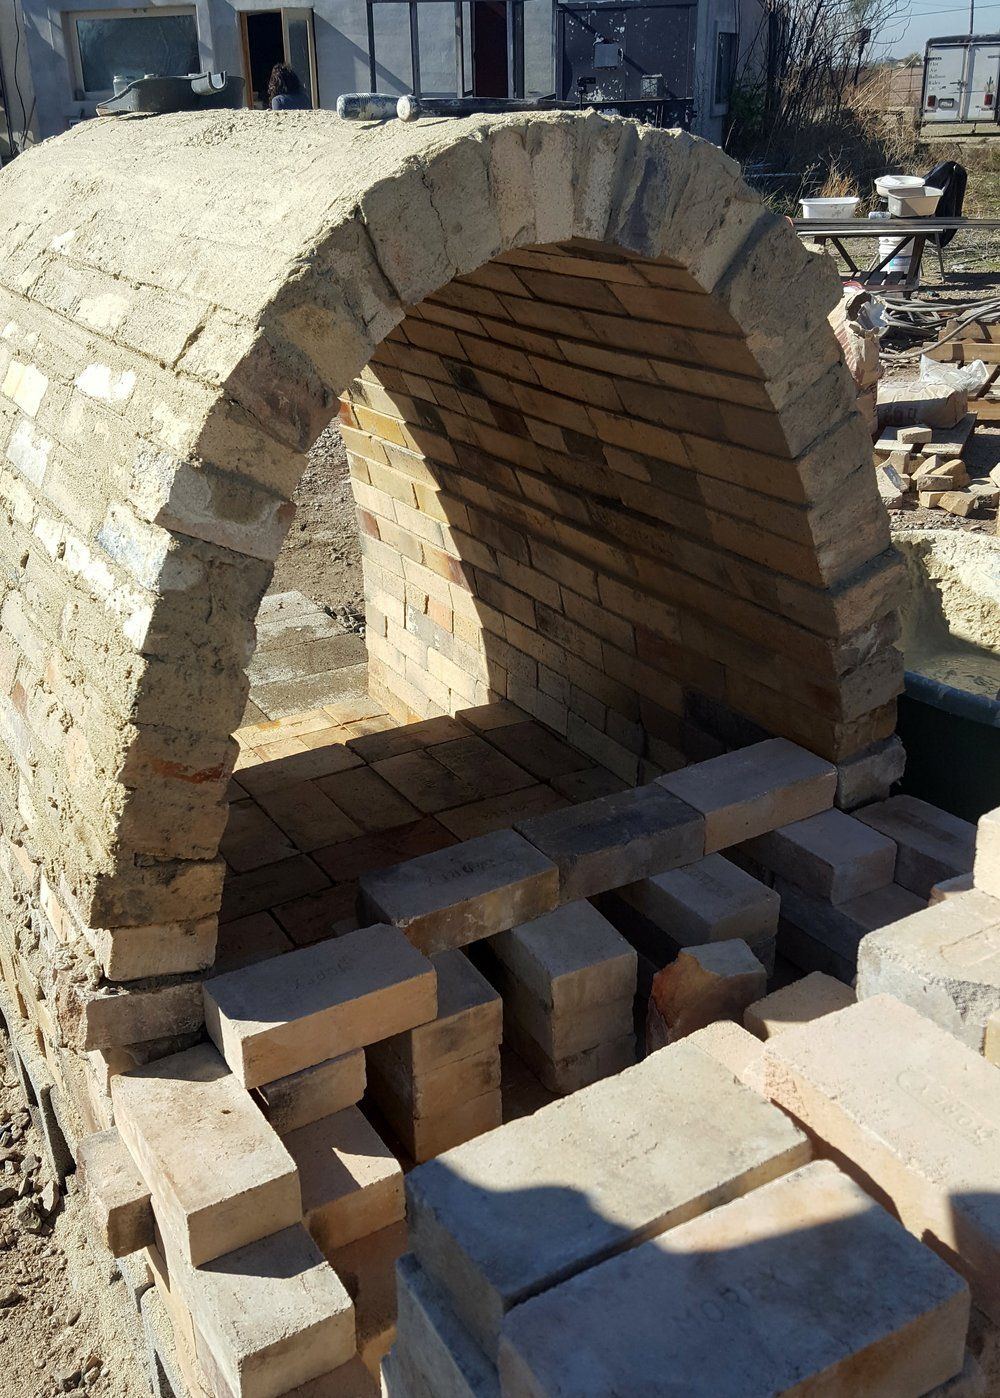 The completed arch from the back, and starting on the chimney.  The chimney, along with little slots at the back of the arch, will help to suck through the air from the front of the kiln out the back.  The arched shape will help the heat and flames circulate evenly through the kiln.